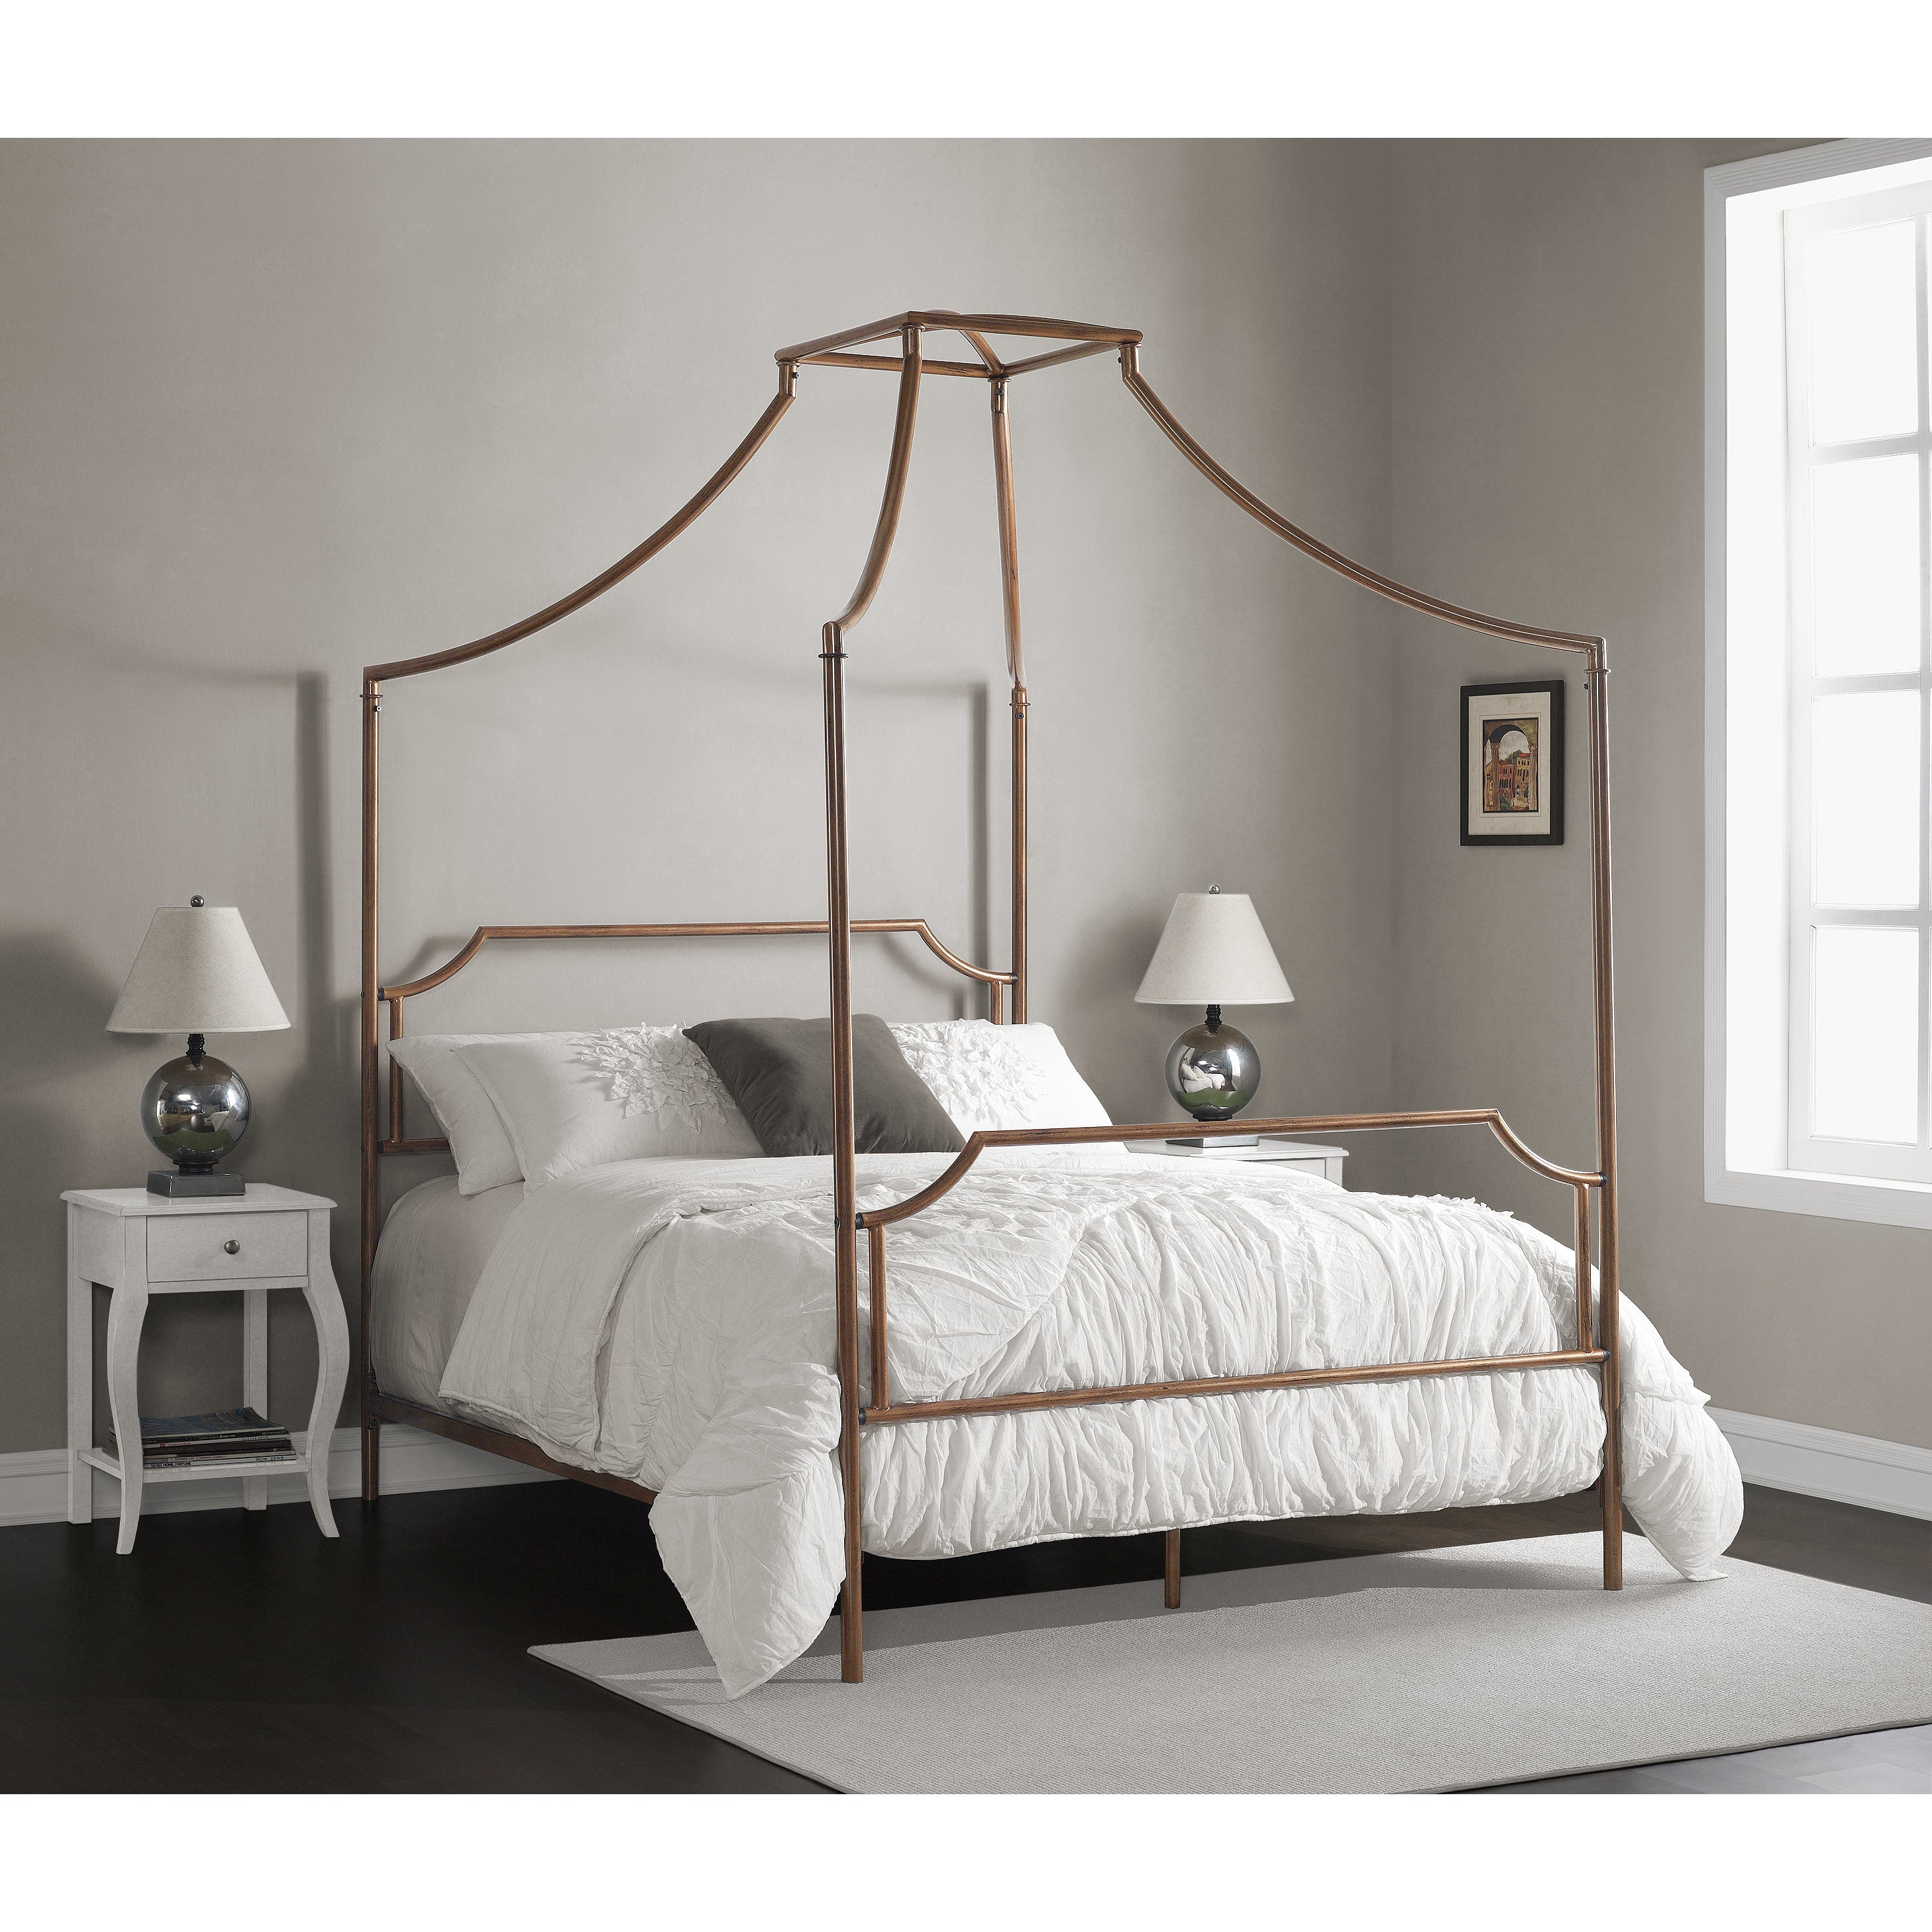 Full Bed And Queen Bed: Shop Bailey Brushed Dark Copper Colored Full-size Canopy